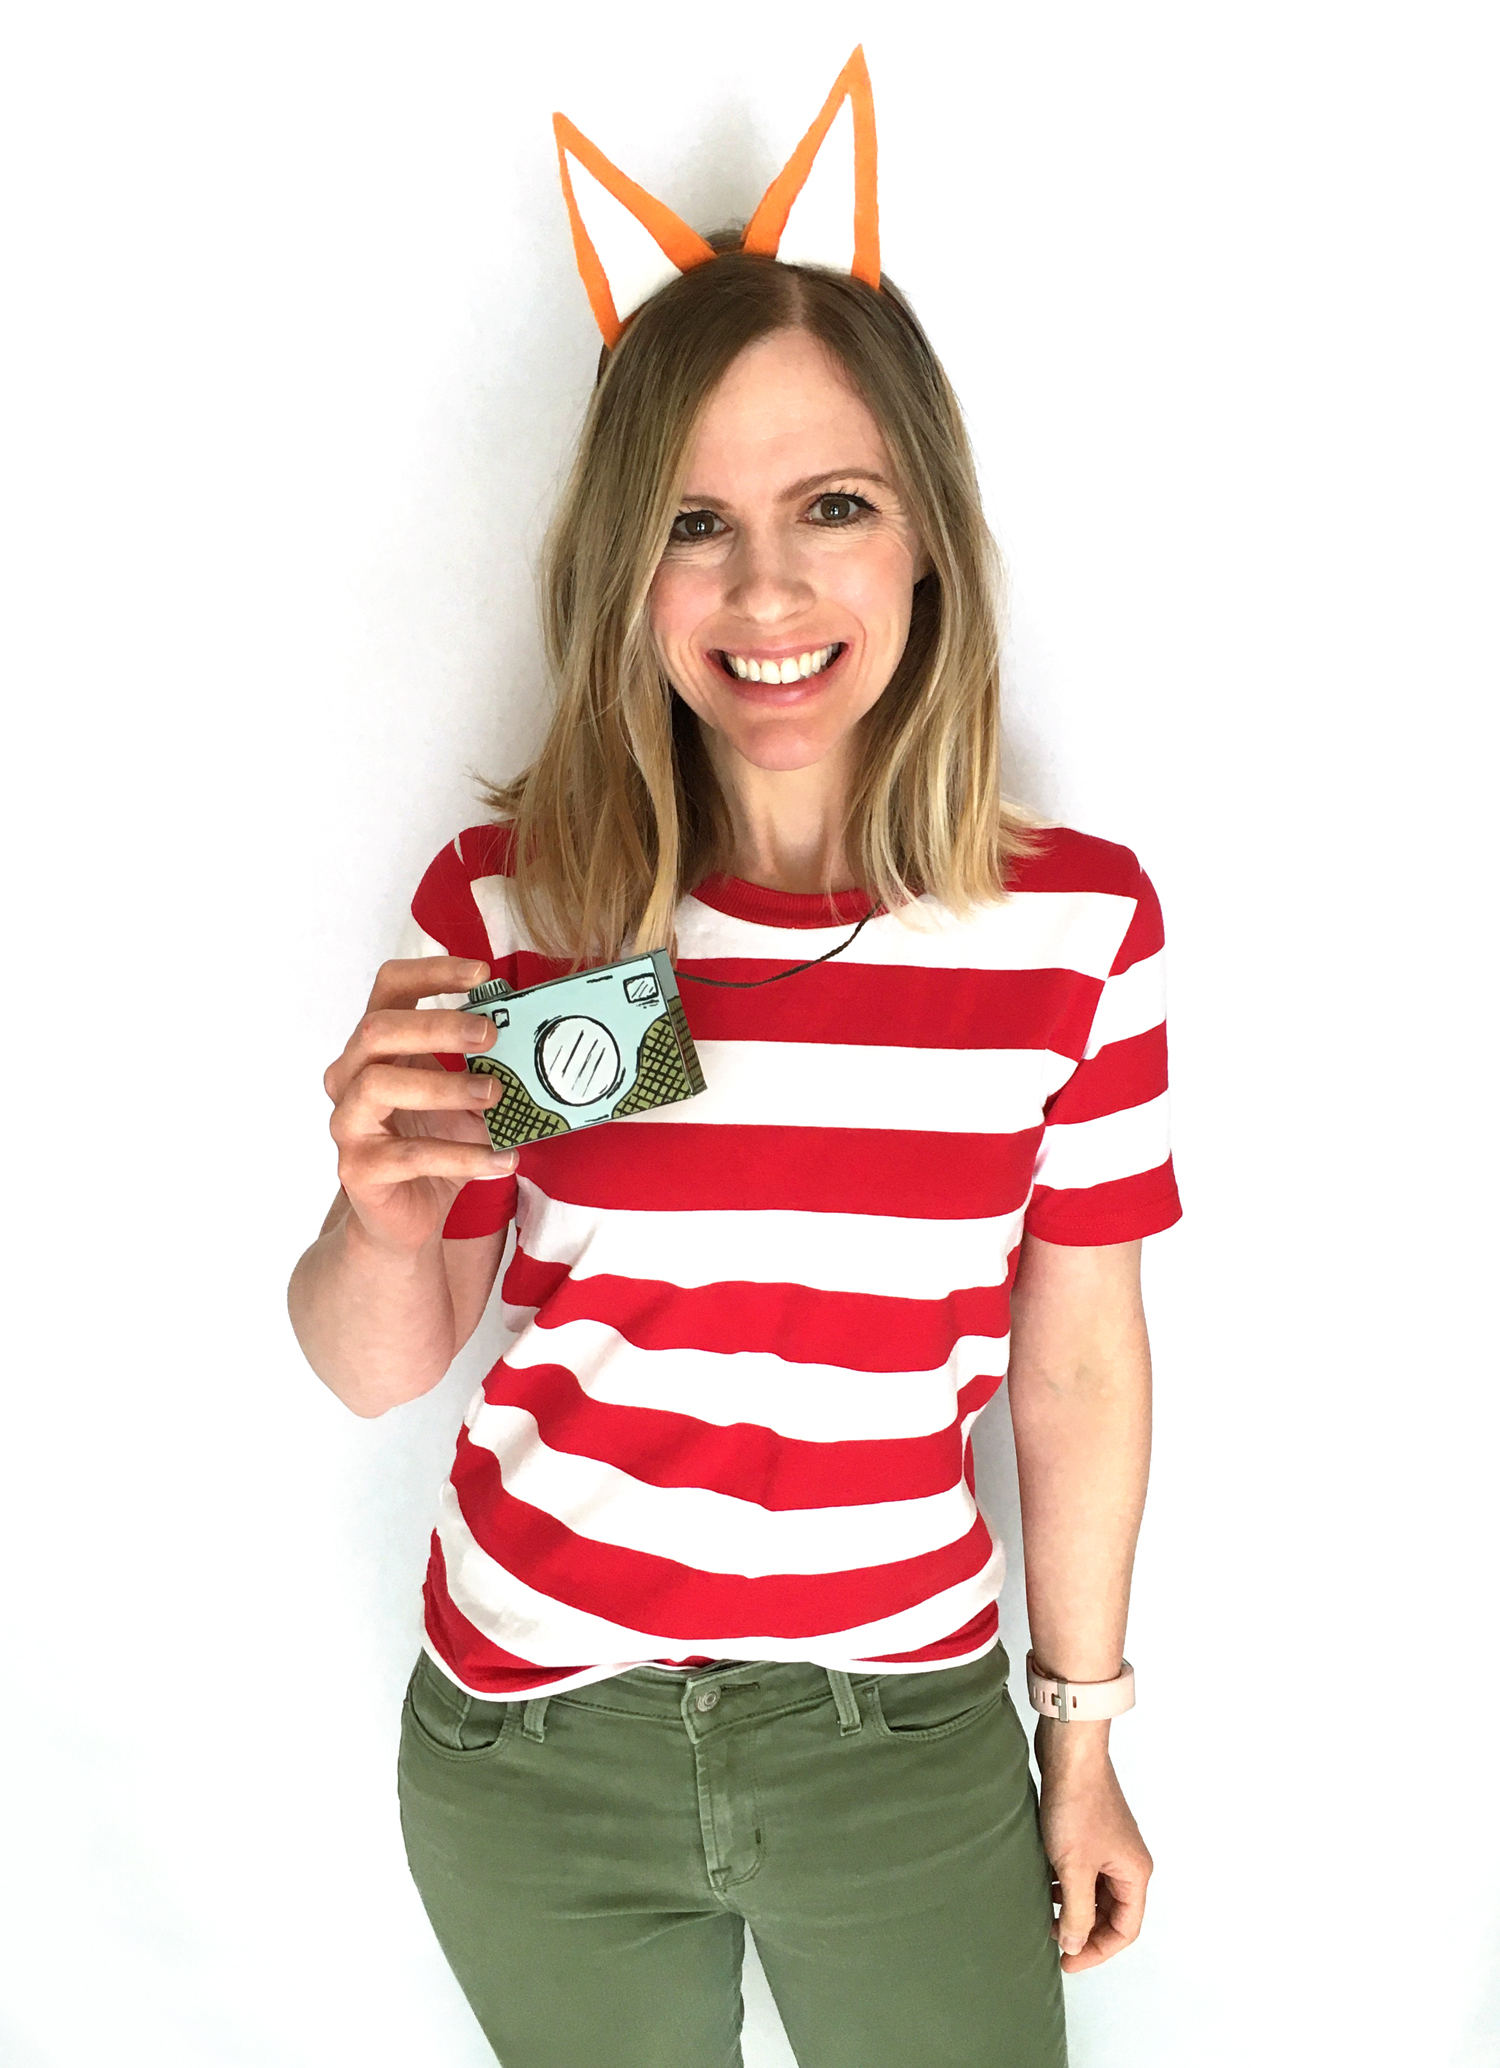 last minute halloween costume - diy picture book character costume, fox costume, fitz the fox, easy book week costume idea, kids halloween costume idea